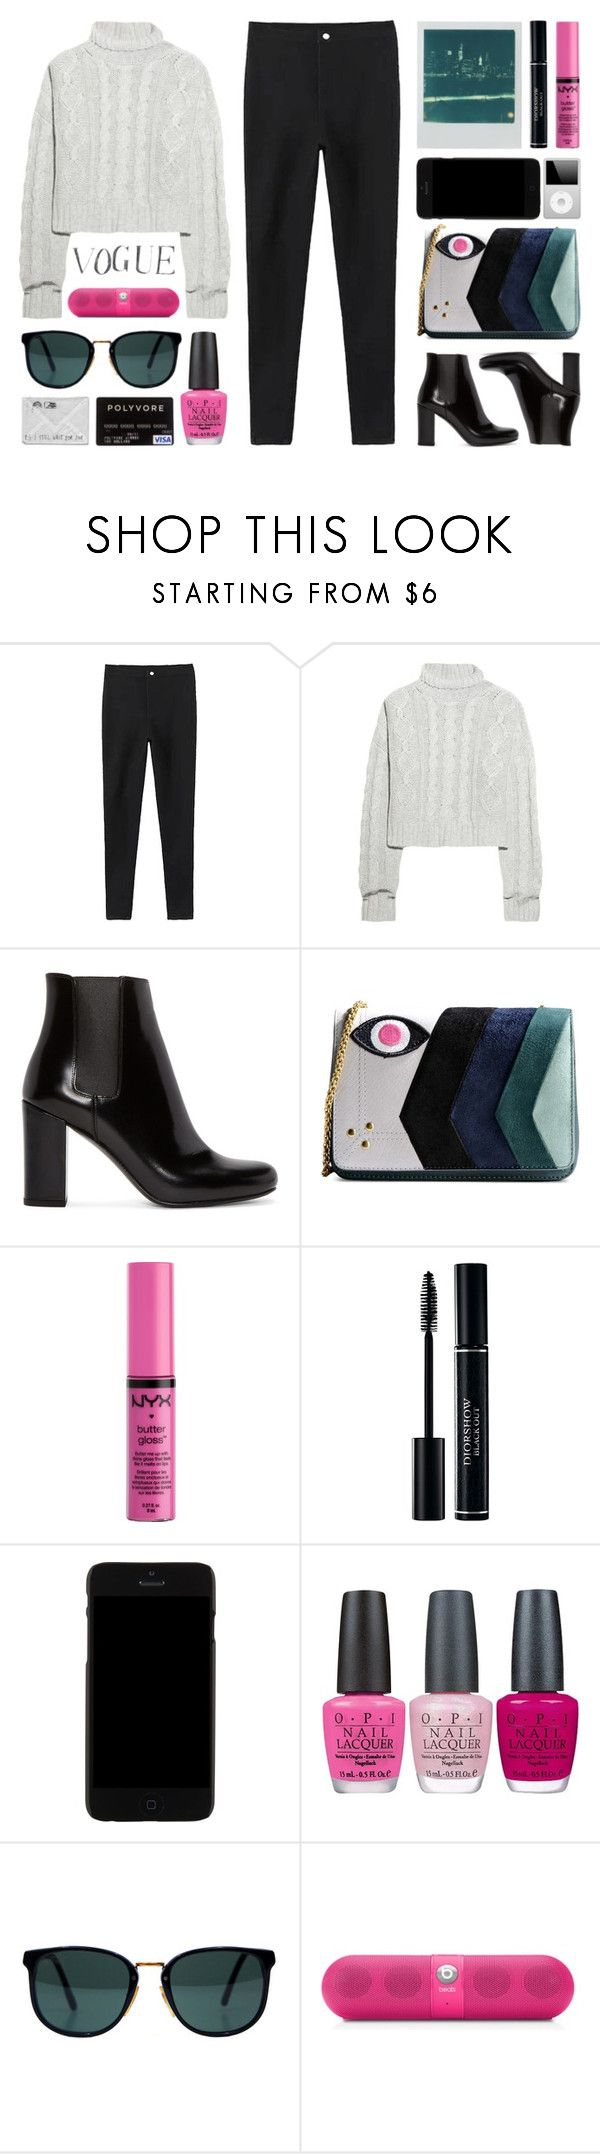 """//You can't make your heart feel something it won't//"" by the-key-to-my-heart ❤ liked on Polyvore featuring Polaroid, Bamford, Yves Saint Laurent, Jérôme Dreyfuss, NYX, Kenzo, OPI, Ray-Ban and Beats by Dr. Dre"